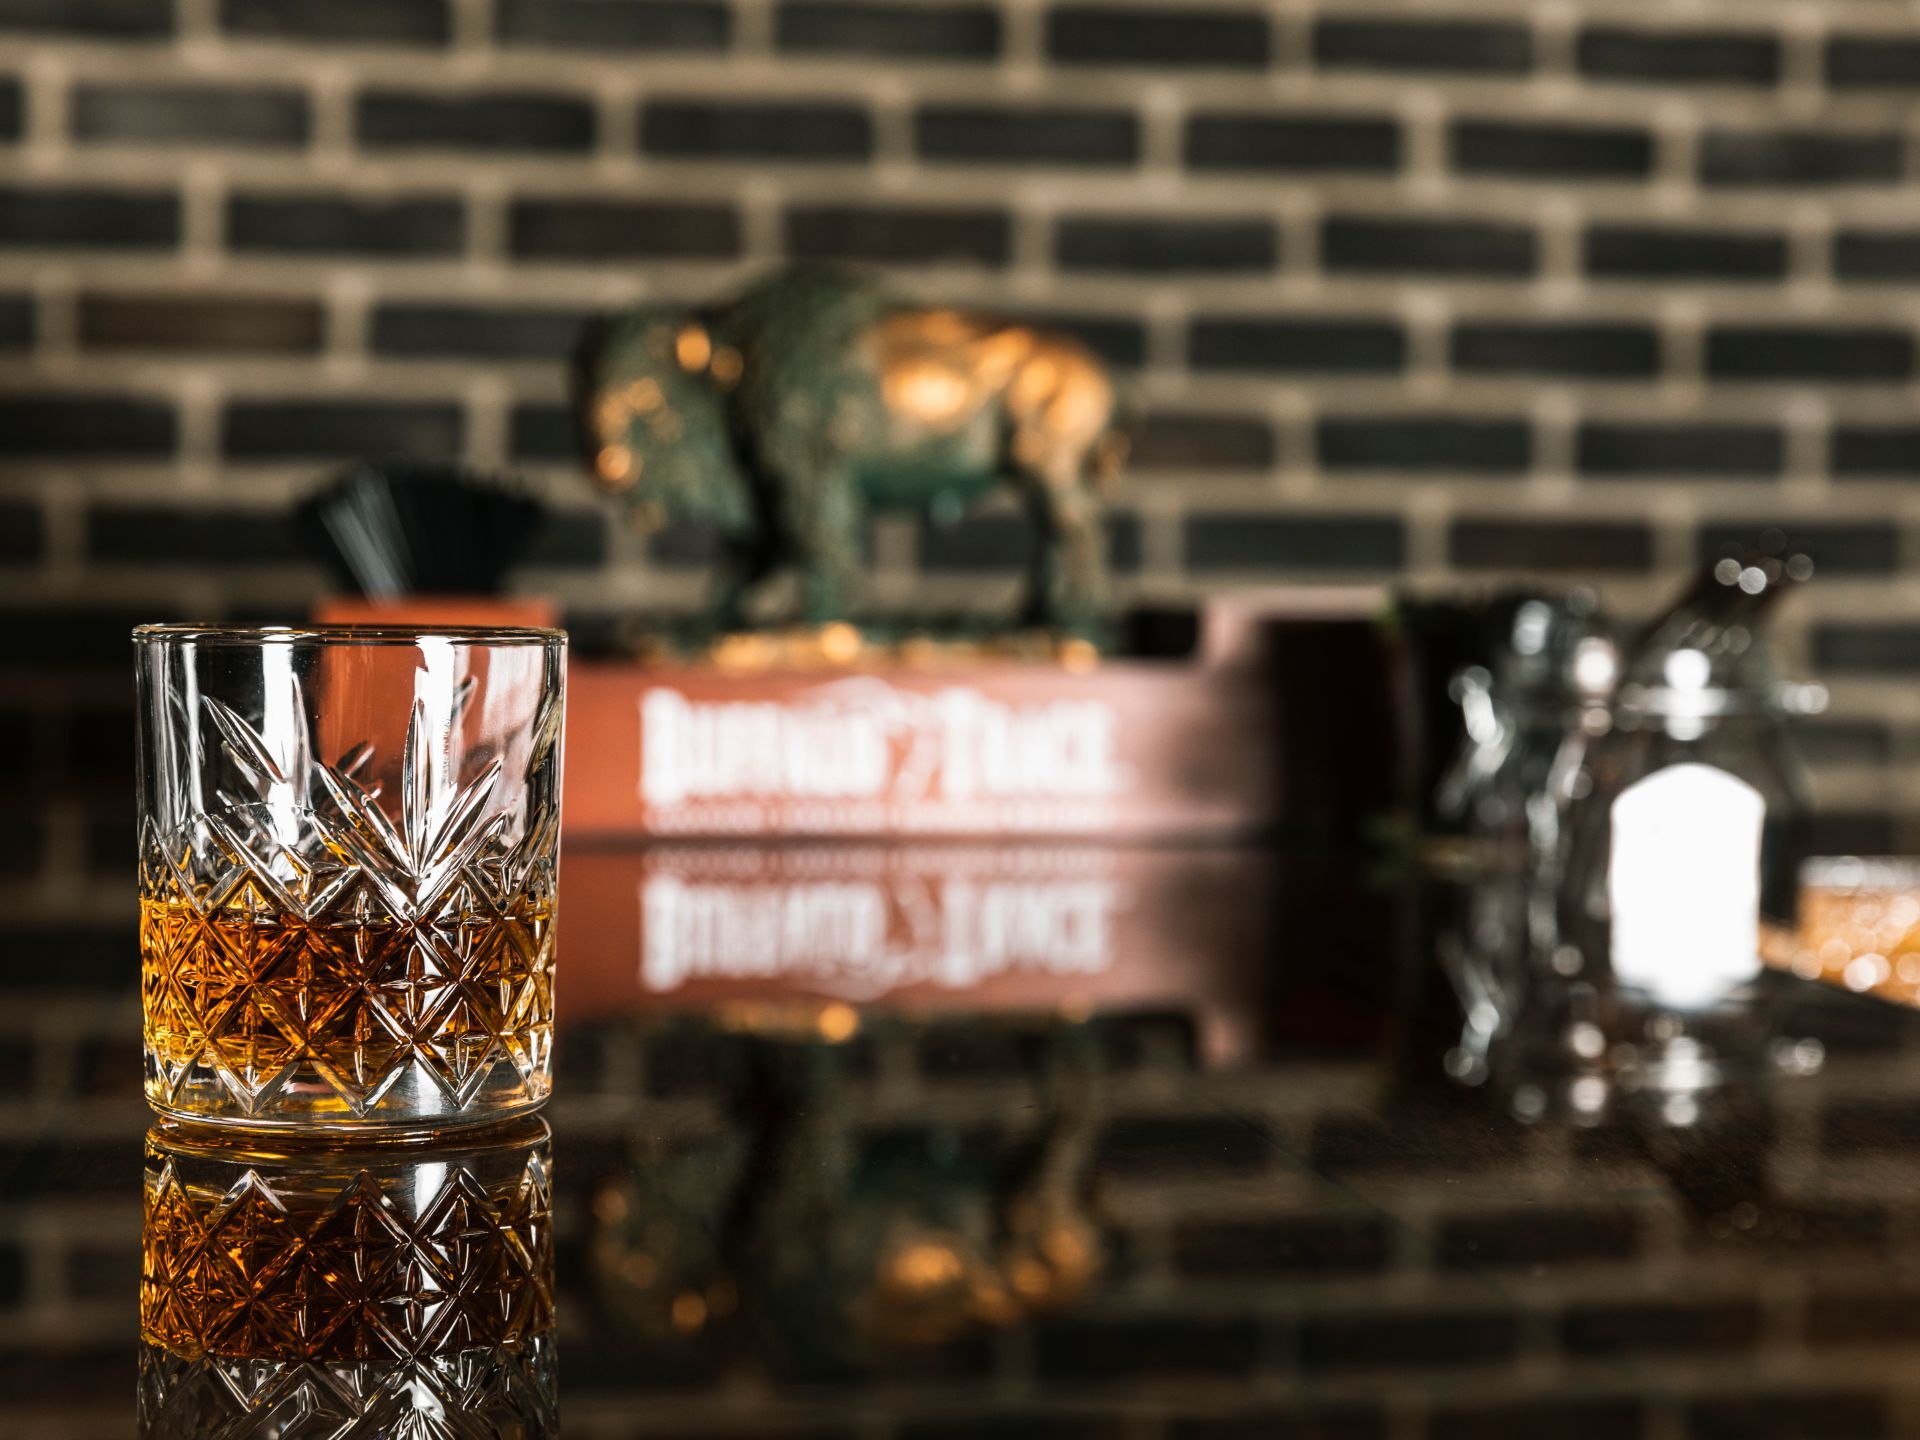 Whiskey in a glass on a bar-top